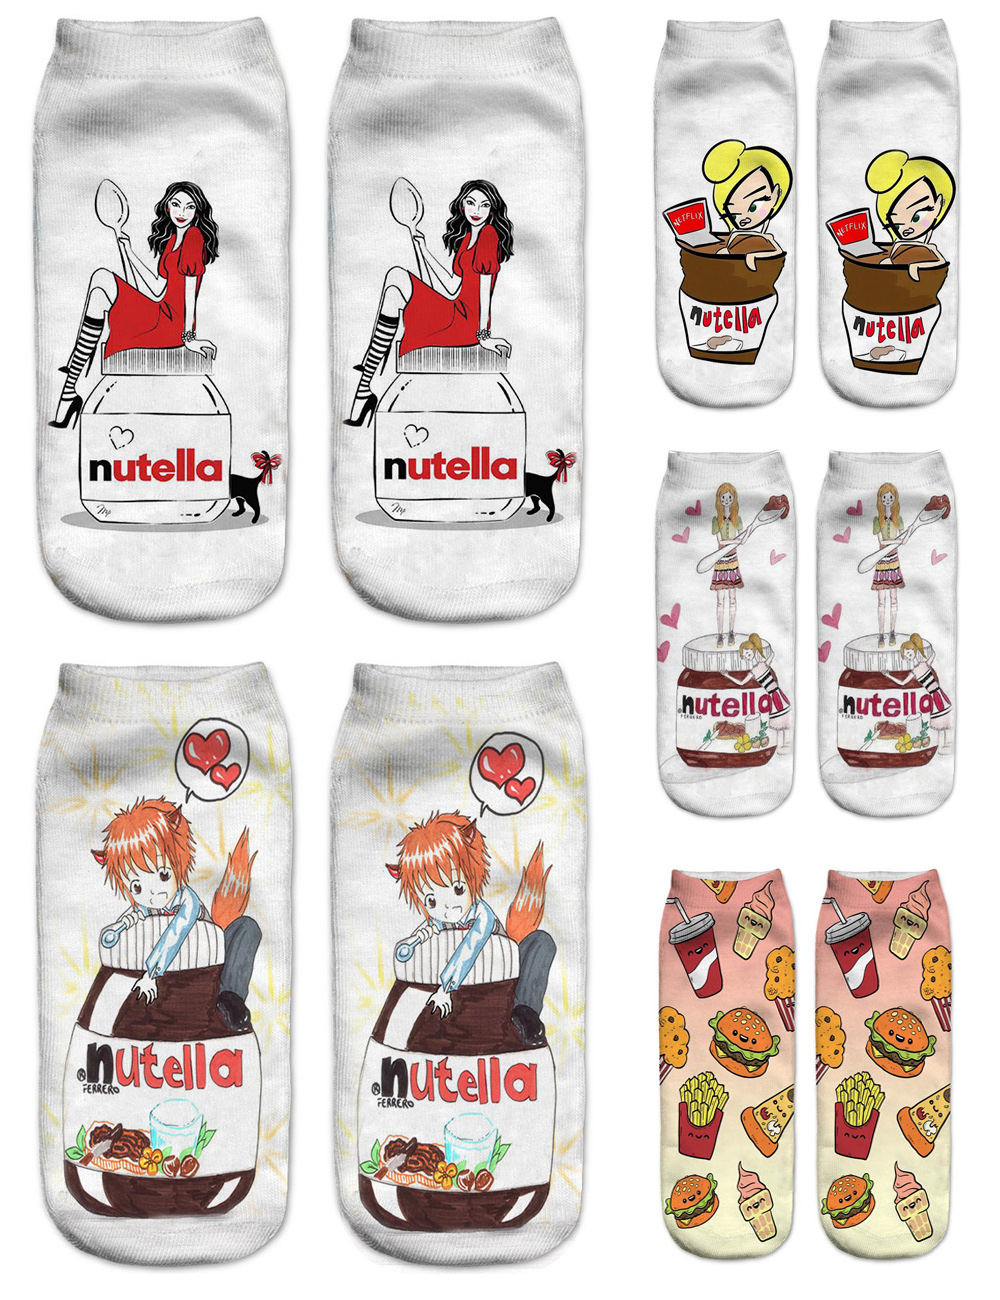 Women 3D Printed Short Socks Funny Spring Summer Hot Happy Cotton Fashionable Nutella Pizza Female Casual Ankle Socks